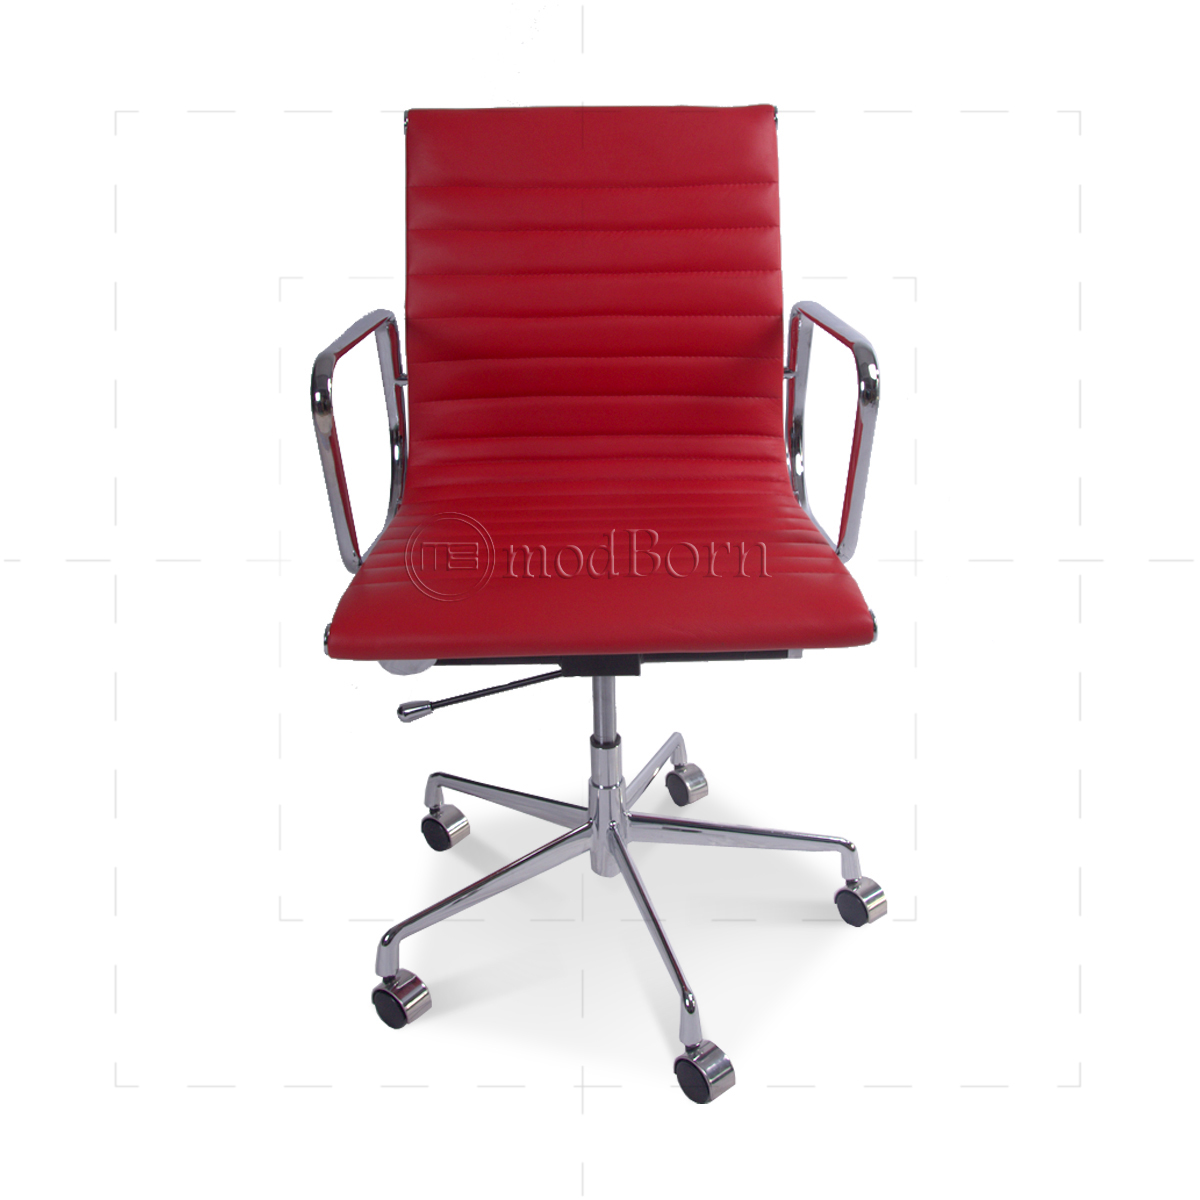 EA117 Eames Style Office Chair Low Back Ribbed Red Leather  : eames officechair lowback red front 1200x1200 from www.modborn.com size 1200 x 1200 jpeg 386kB